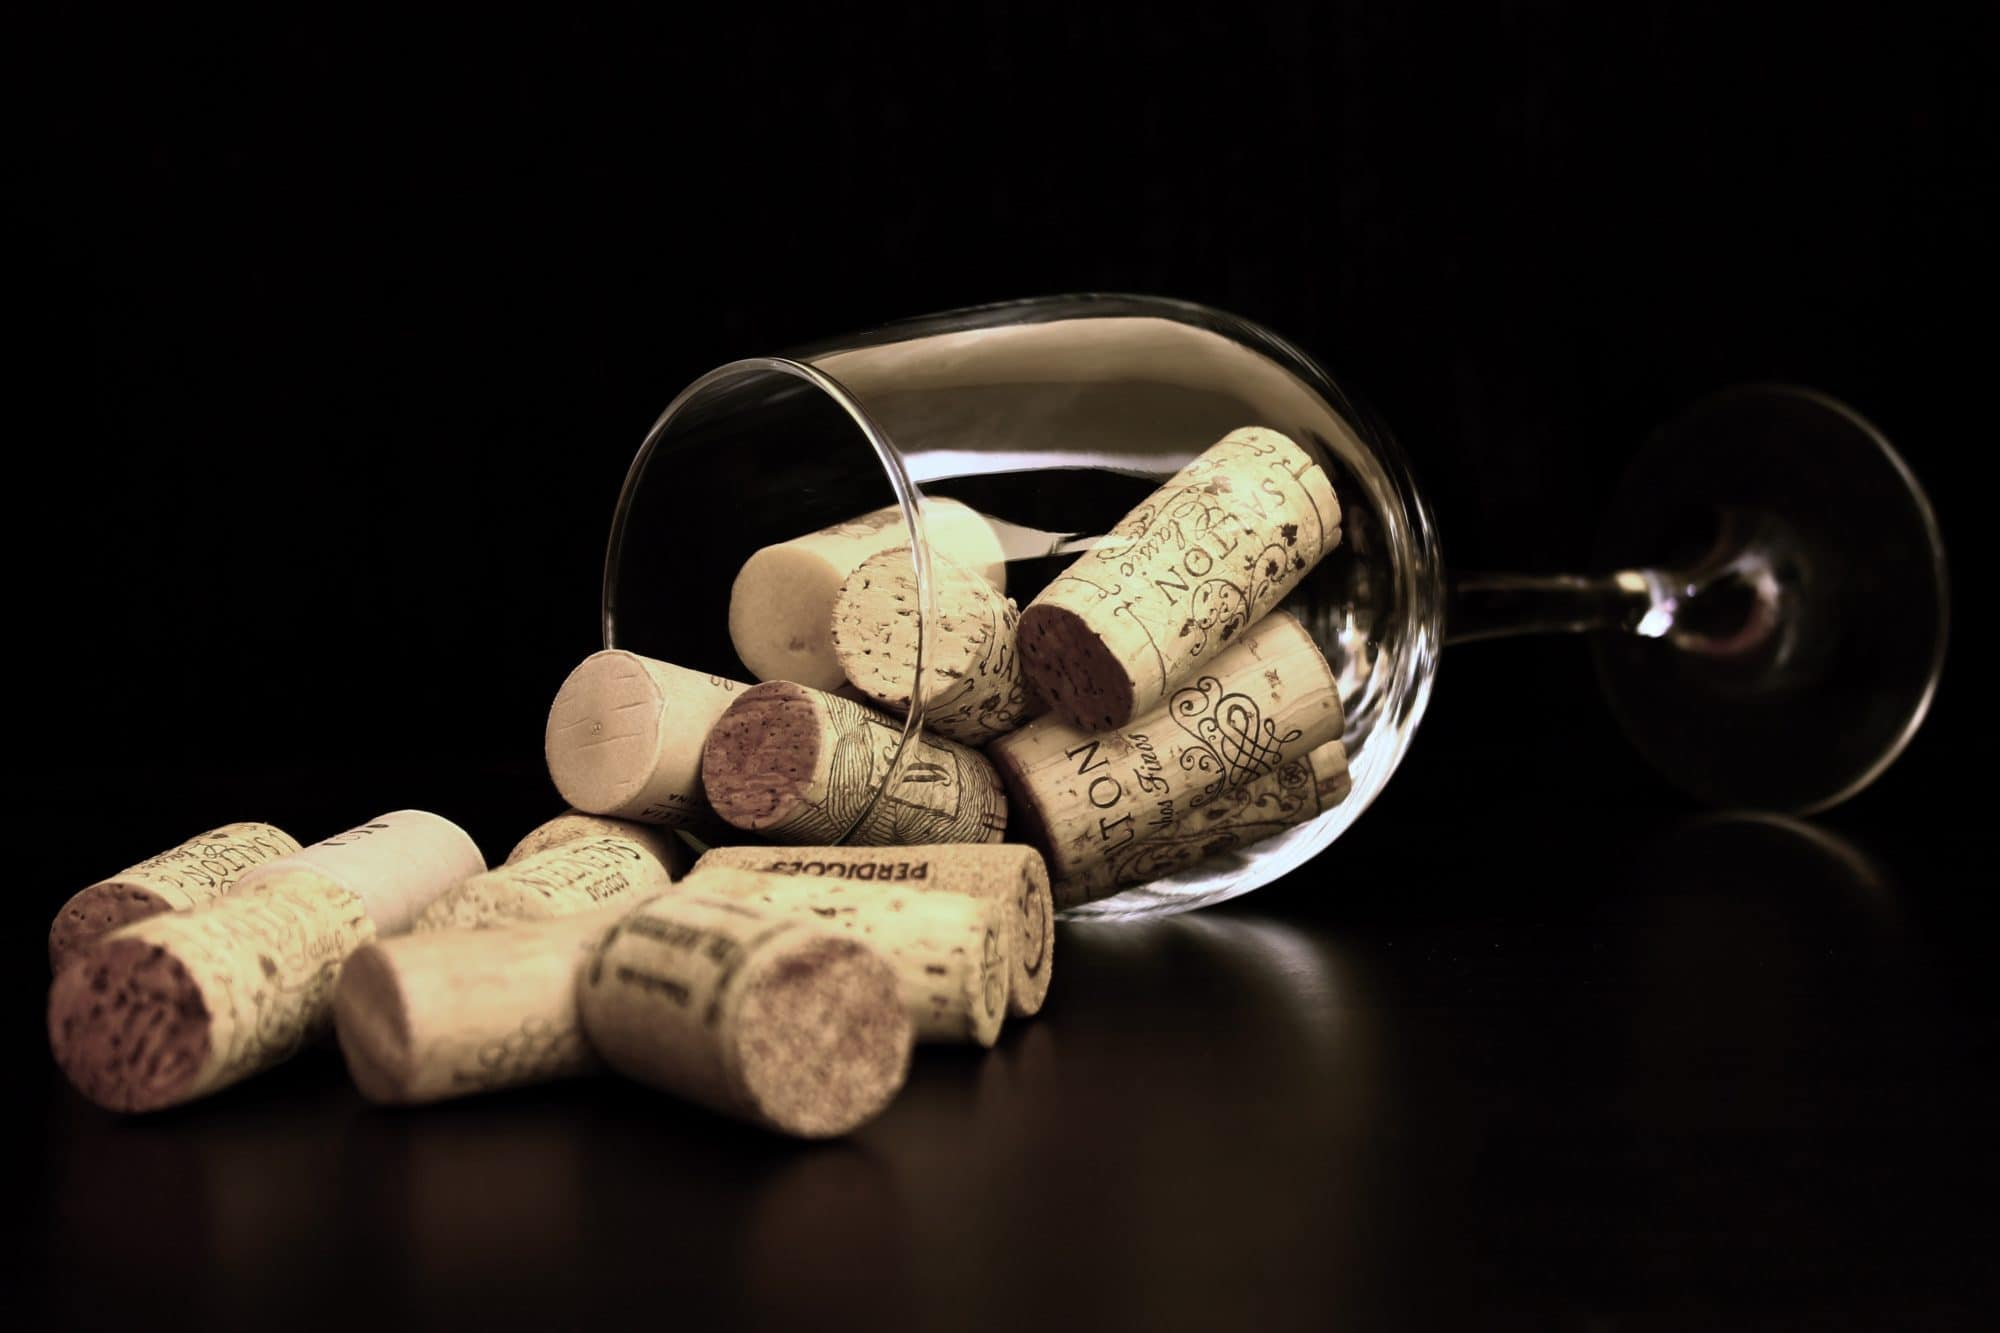 corks cork how to open a wine bottle without a corkscrew opener hacks